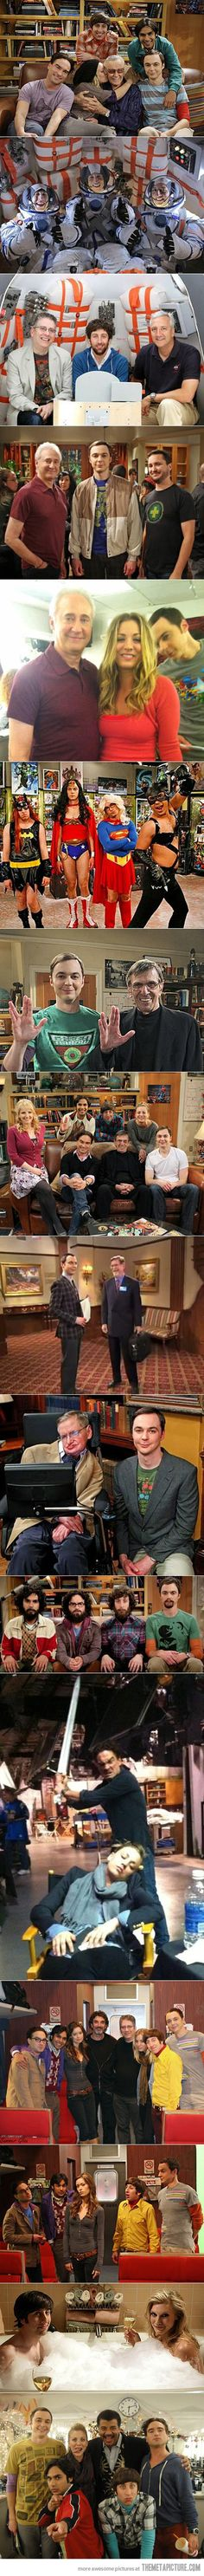 It's good to be in The Big Bang Theory…